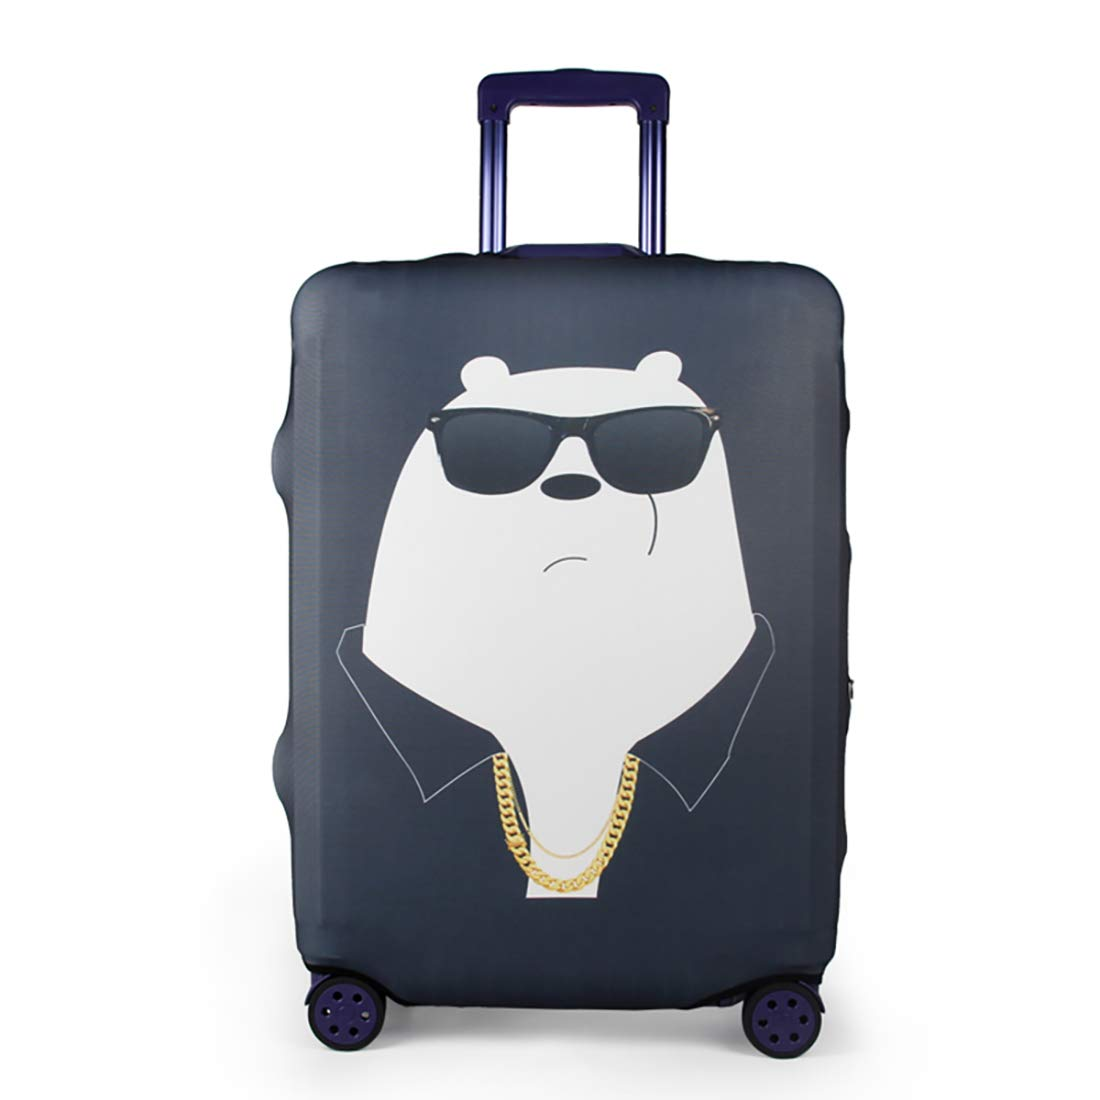 Yellow Bear, S YUL Luggage Protector Cover Suitcase Washable Protective Cover Travel Trolley Case for 19-29 Inch Luggage 19-20